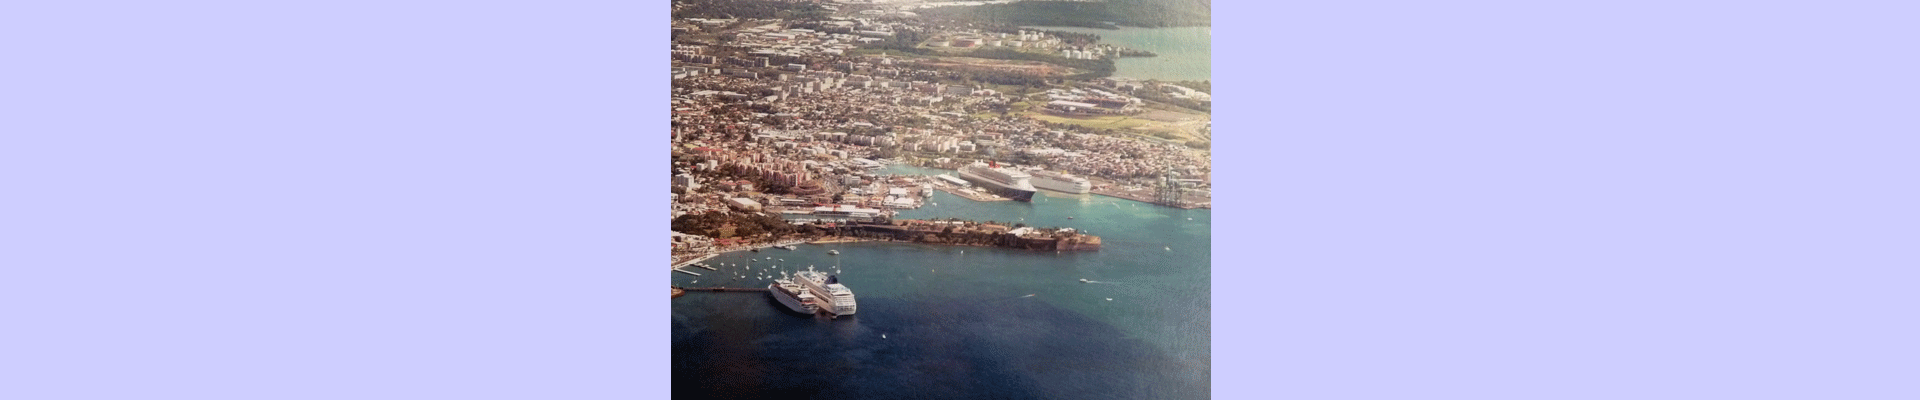 Port of Fort de France - Martinique - French west indies